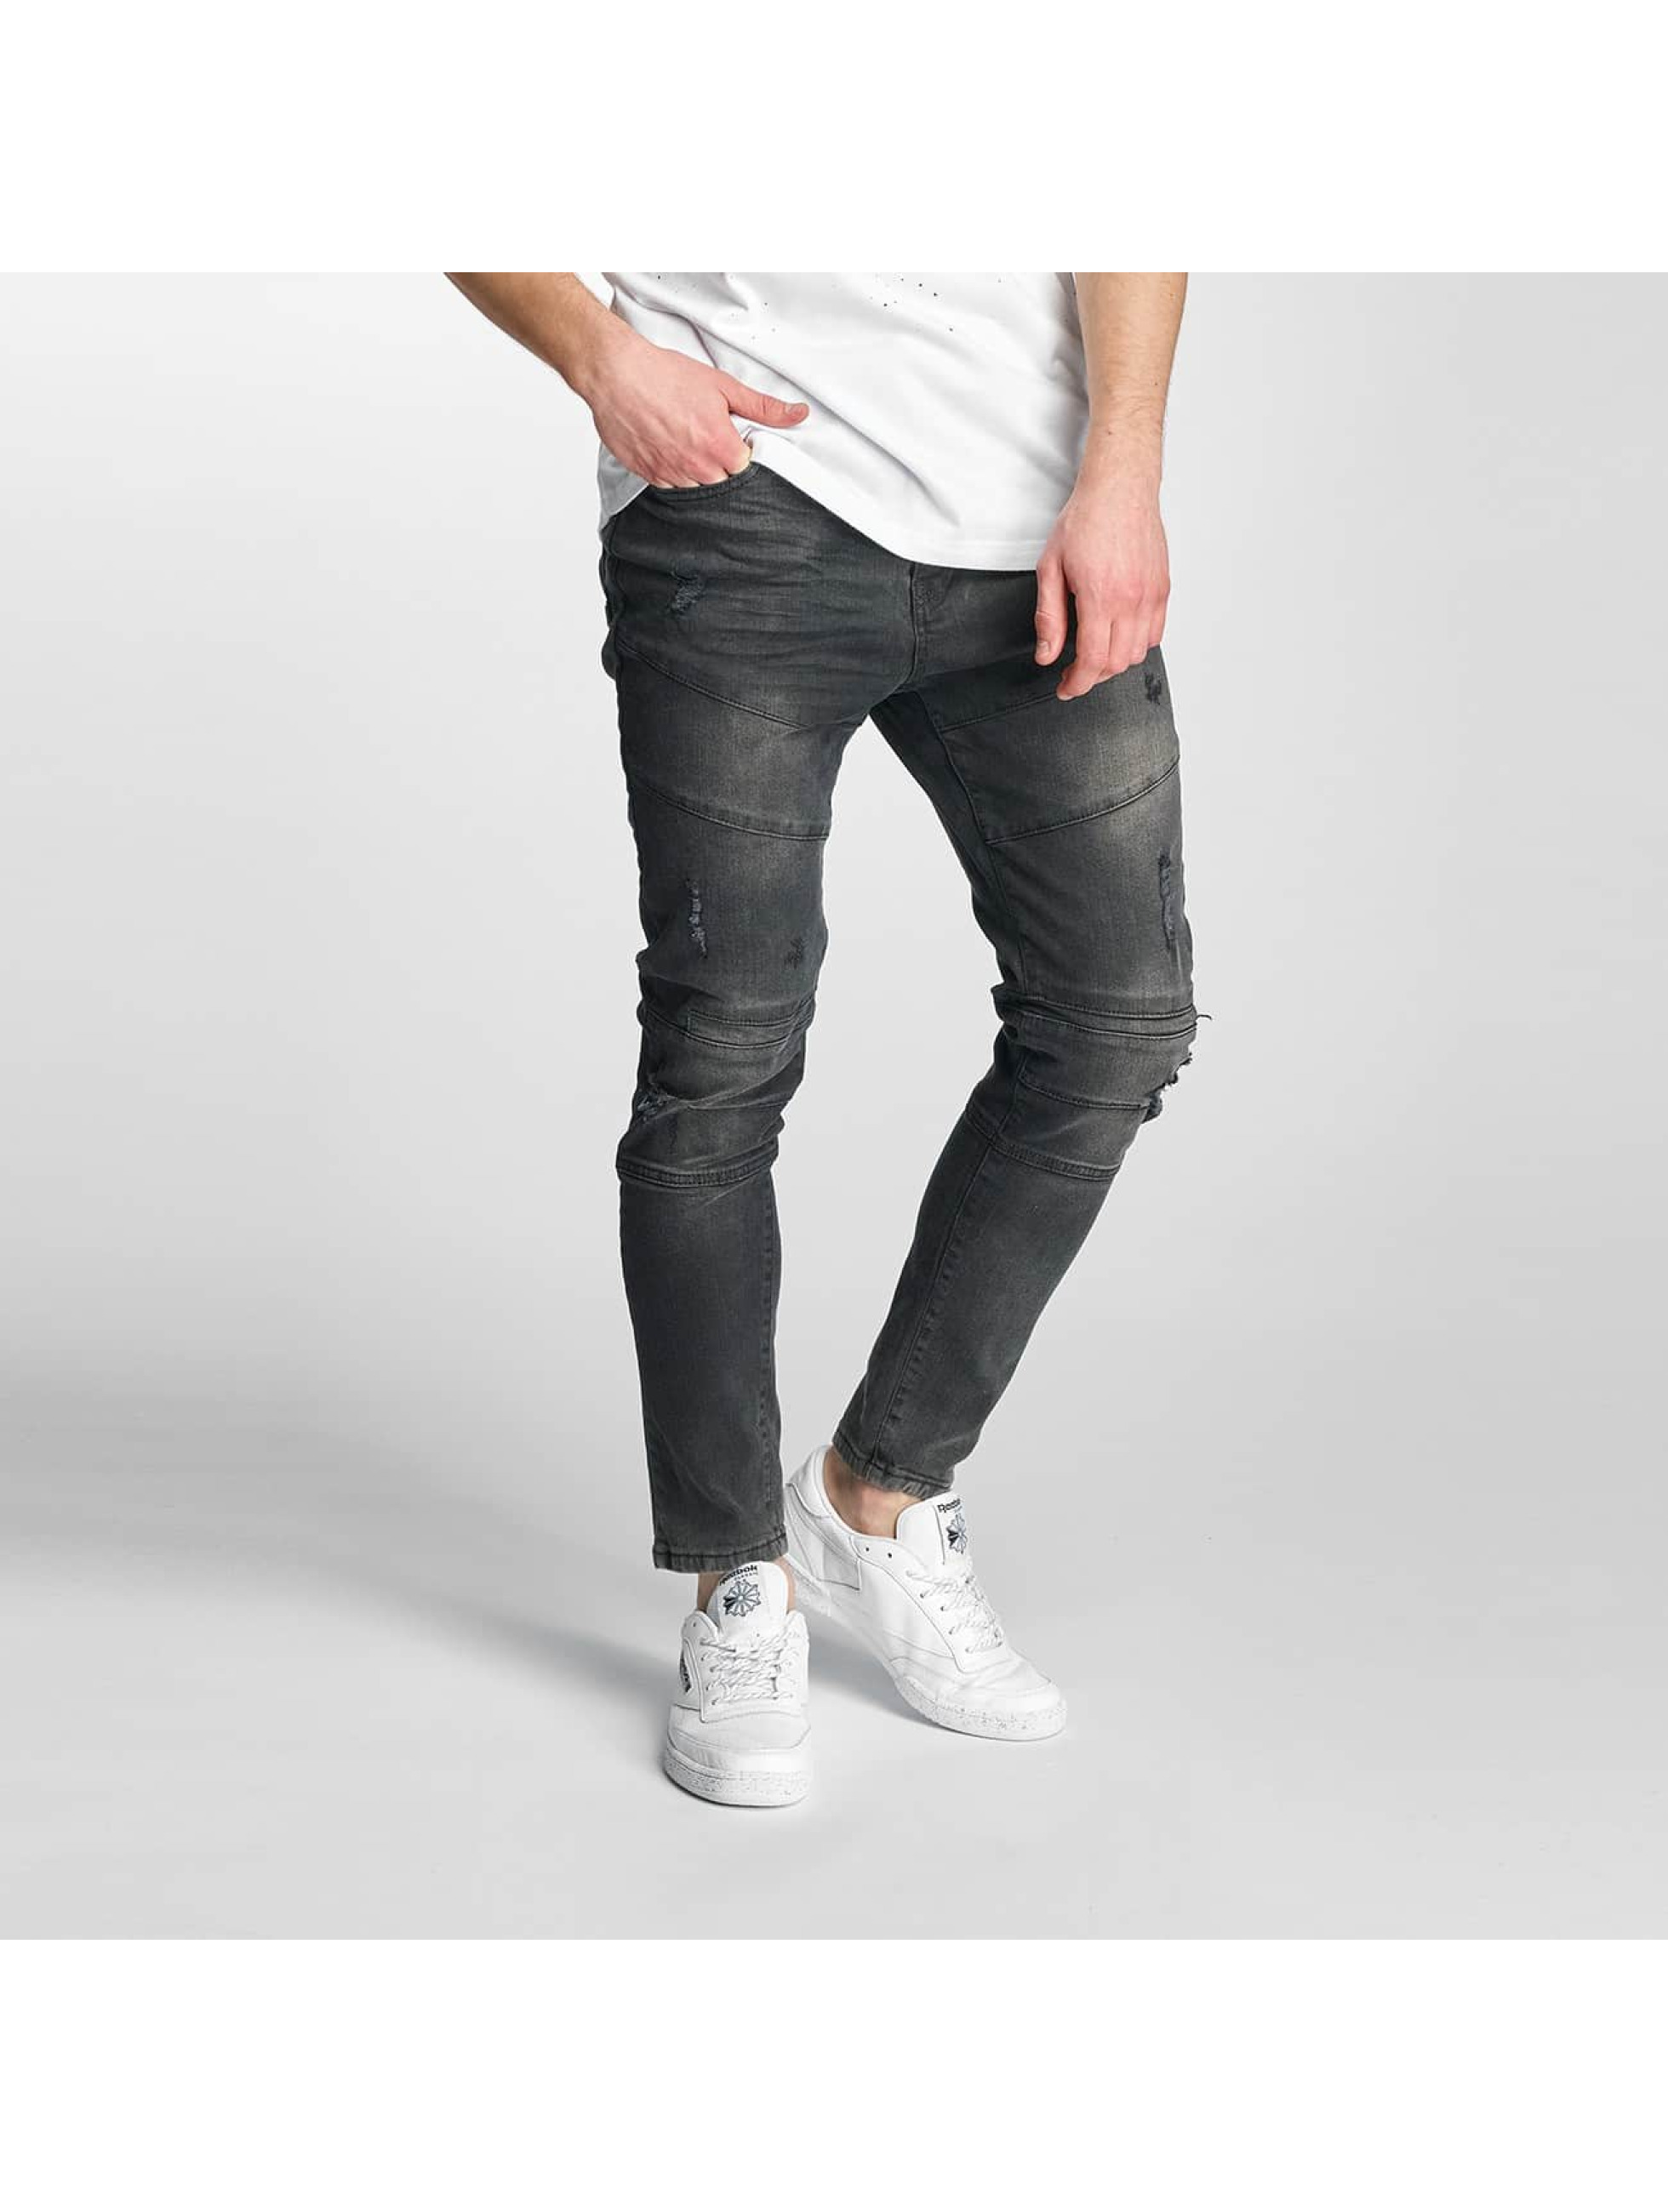 Just Rhyse / Slim Fit Jeans Tulum in black W 32